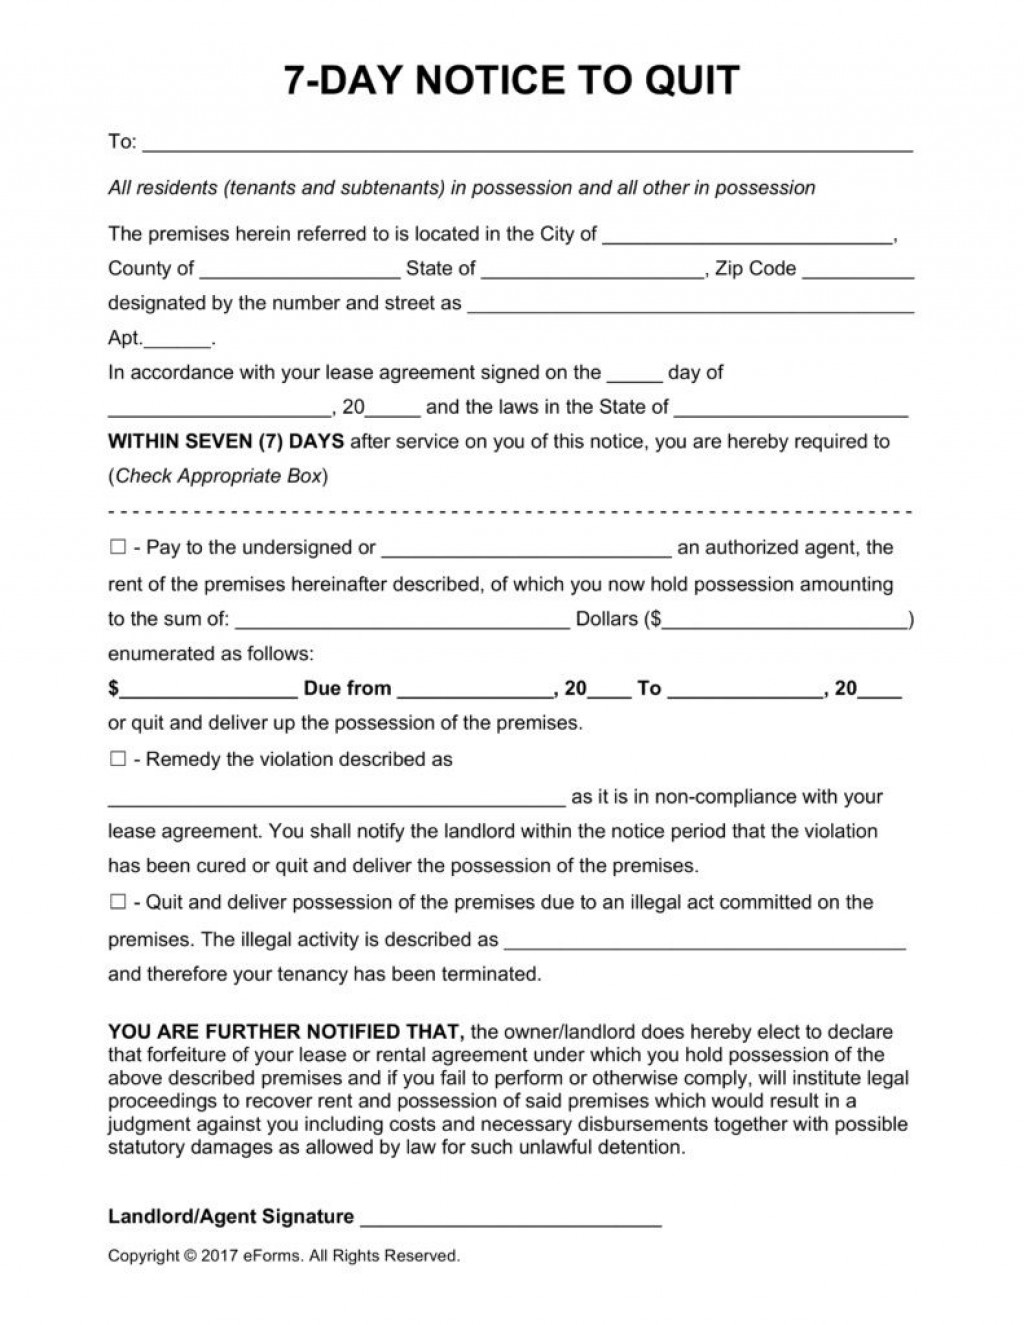 002 Remarkable Eviction Notice Template Free Highest Quality  30 Day Uk Word DocumentLarge